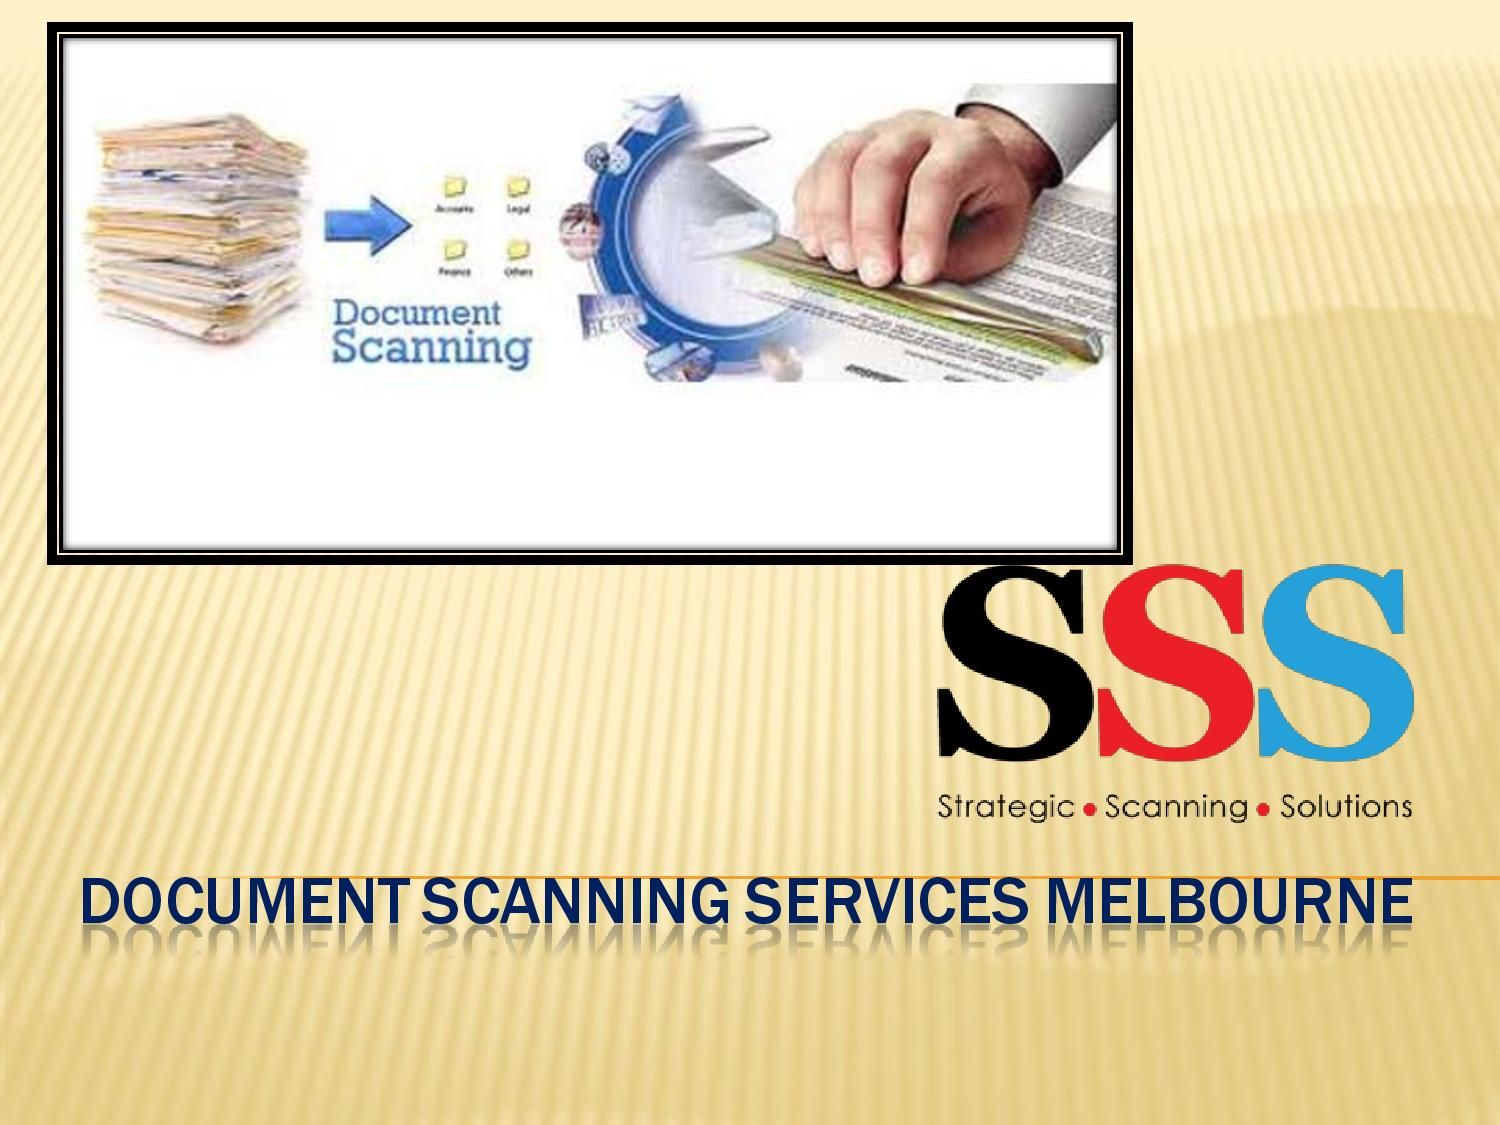 Pin By Strategic Scanning On Strategic Scanning Solutions